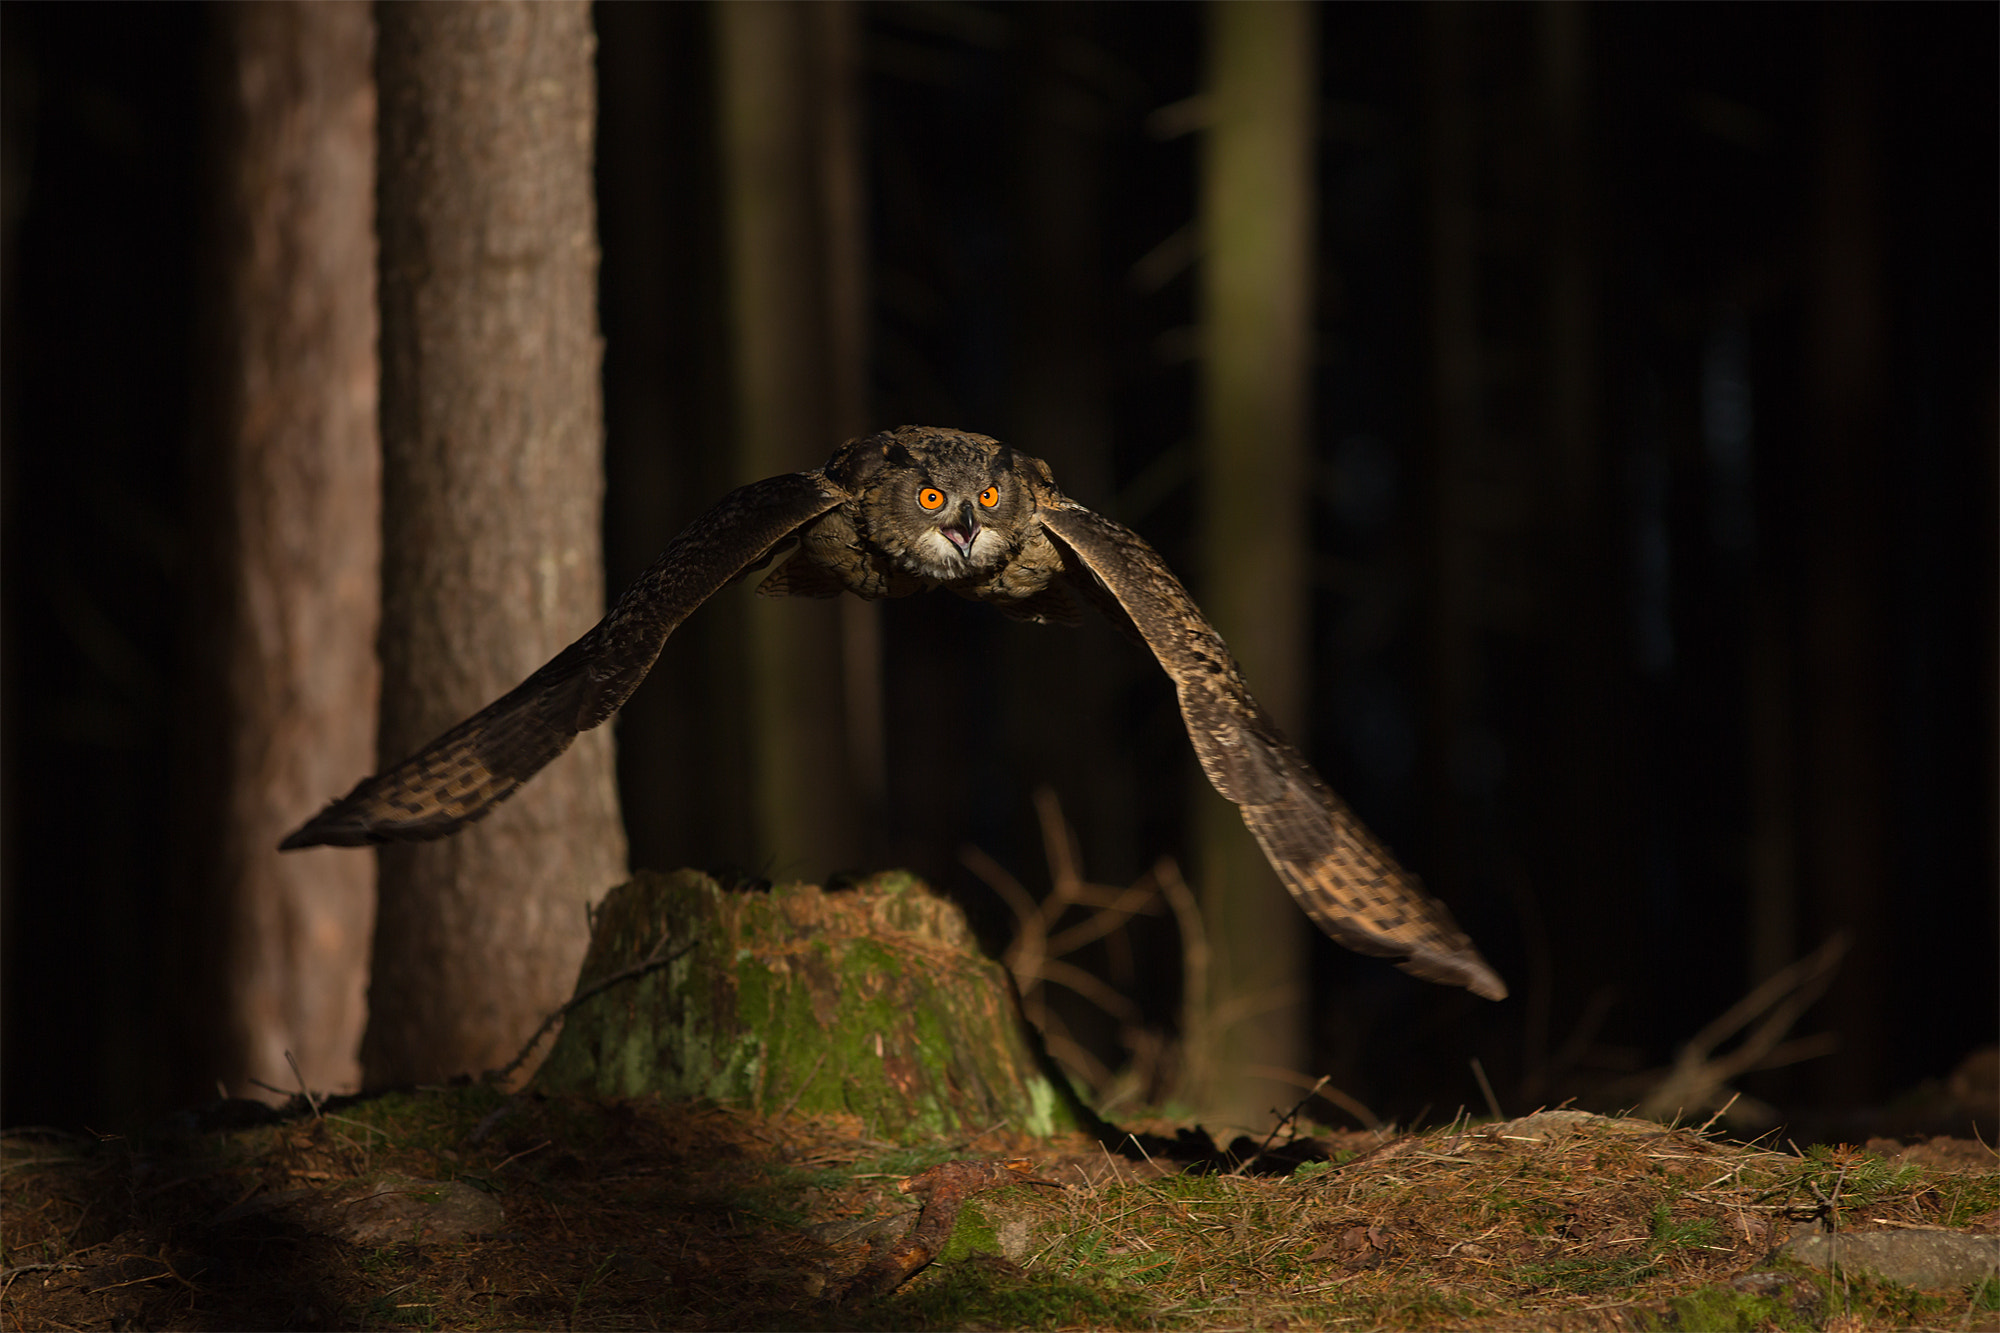 Photograph Eagle Owl by Milan Zygmunt on 500px